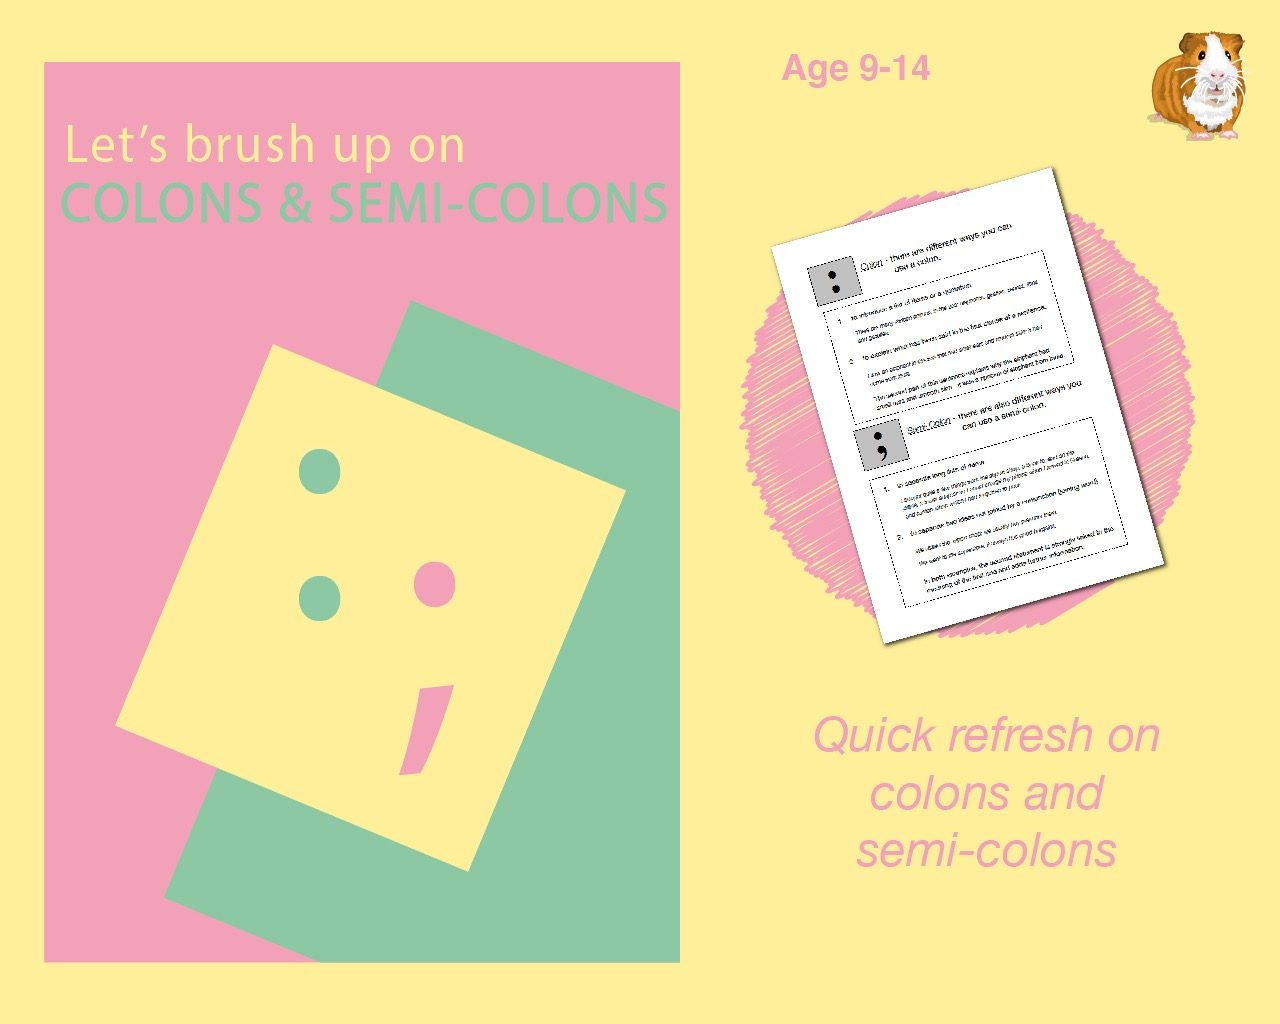 Using Colons And Semi Colons (9-14 years)